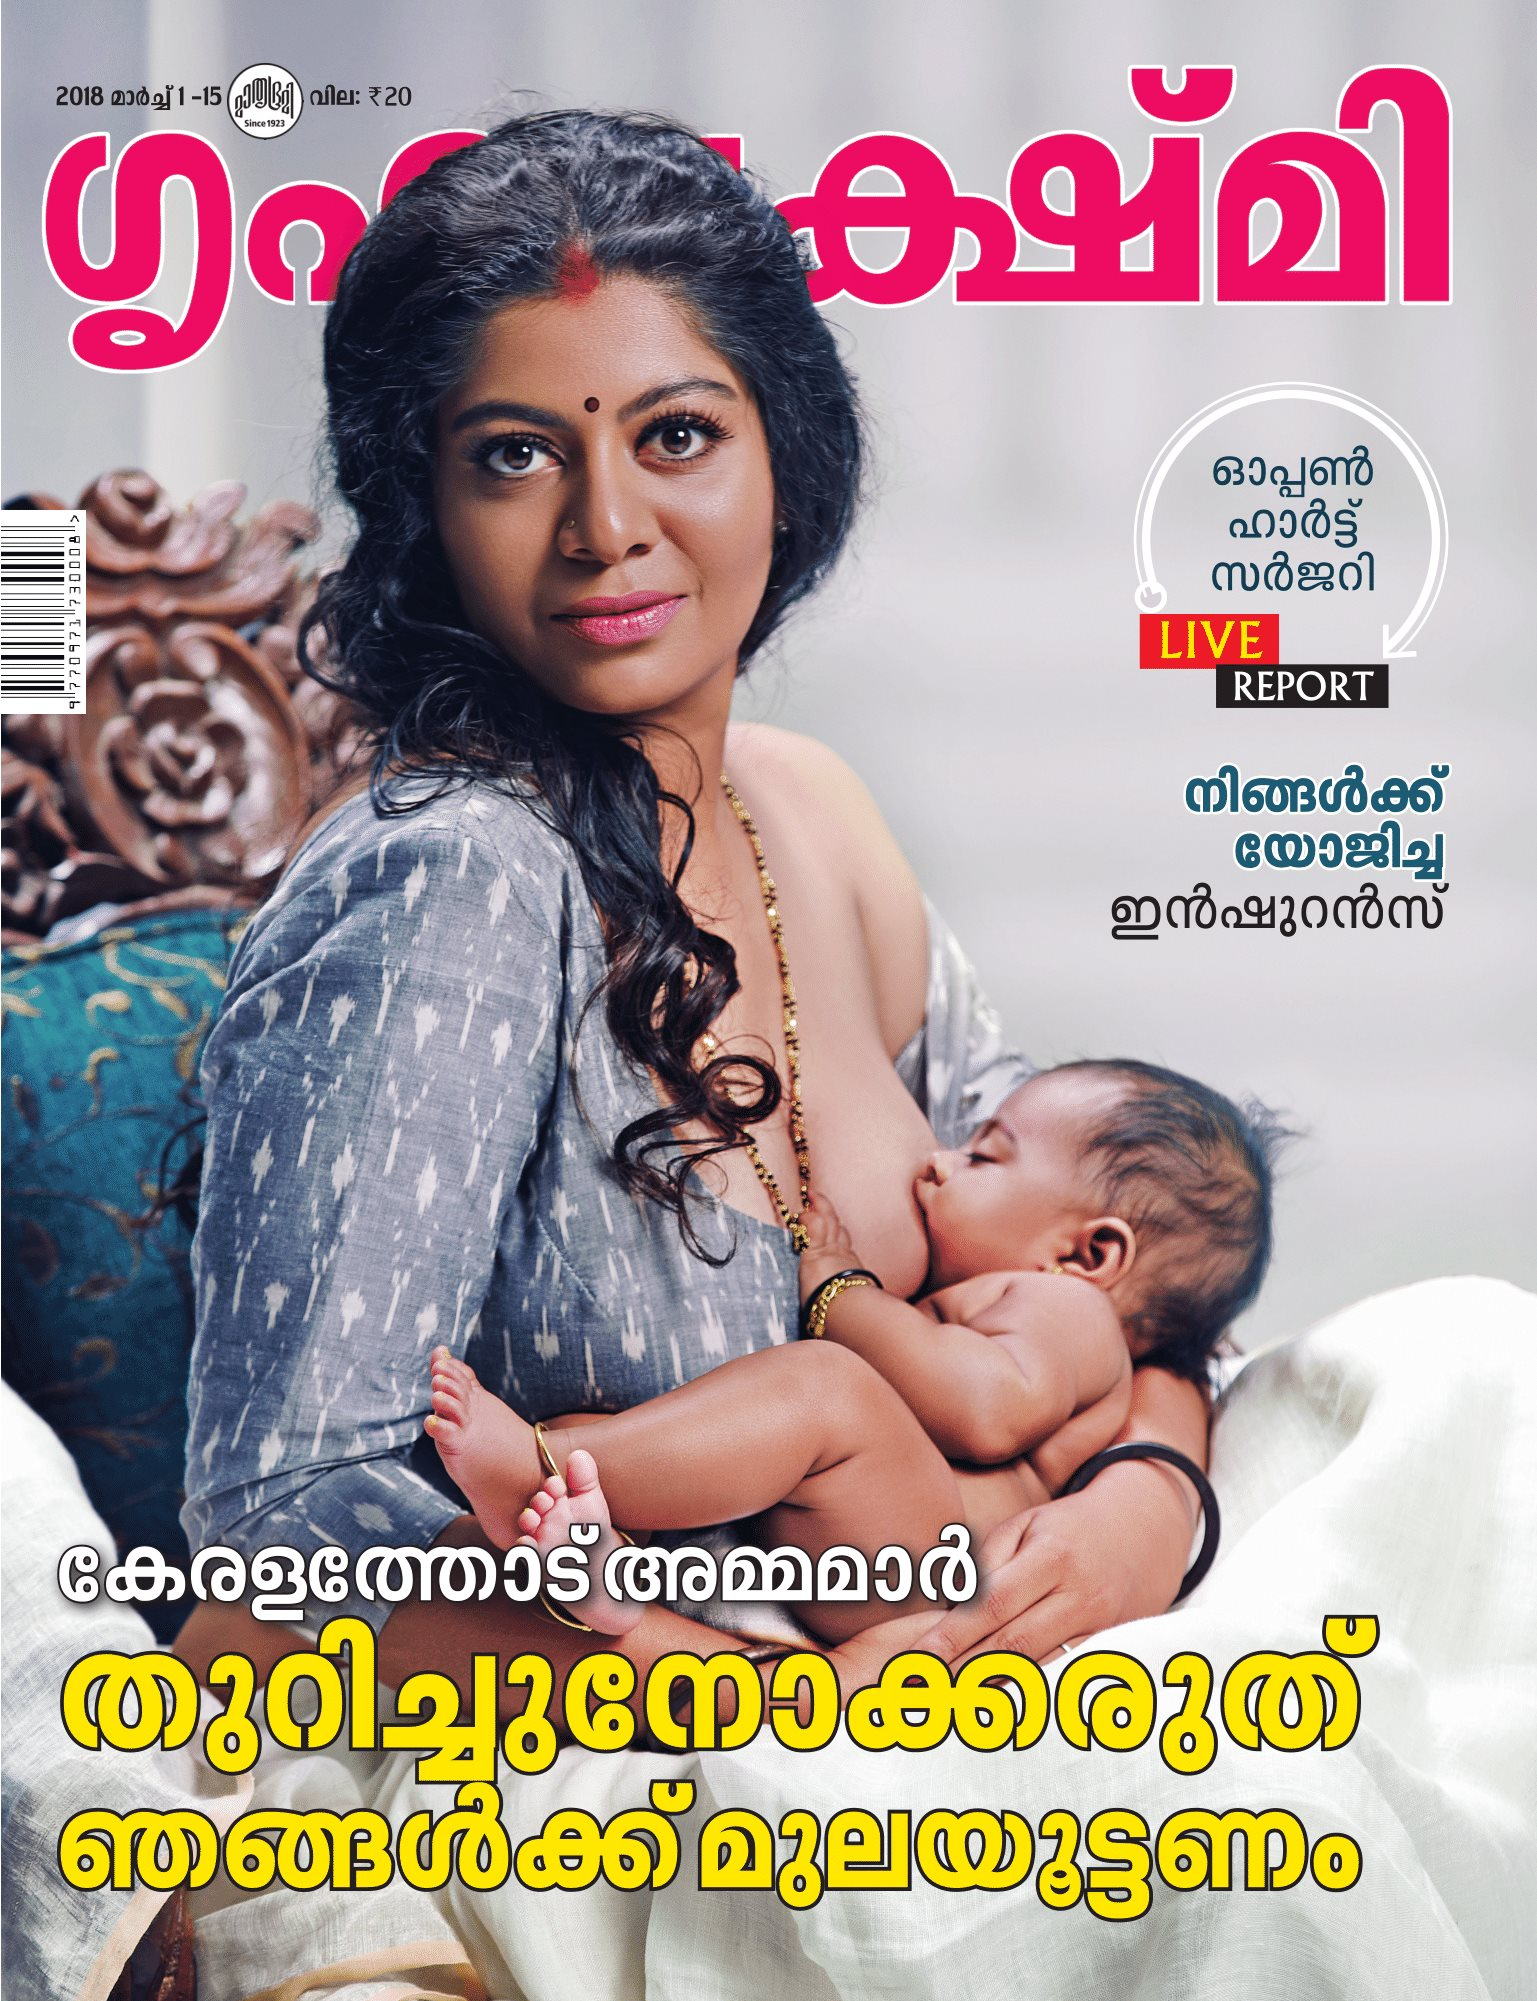 The Cover Story Was On Breastfeeding And Problems That Women Face When Doing So In Public